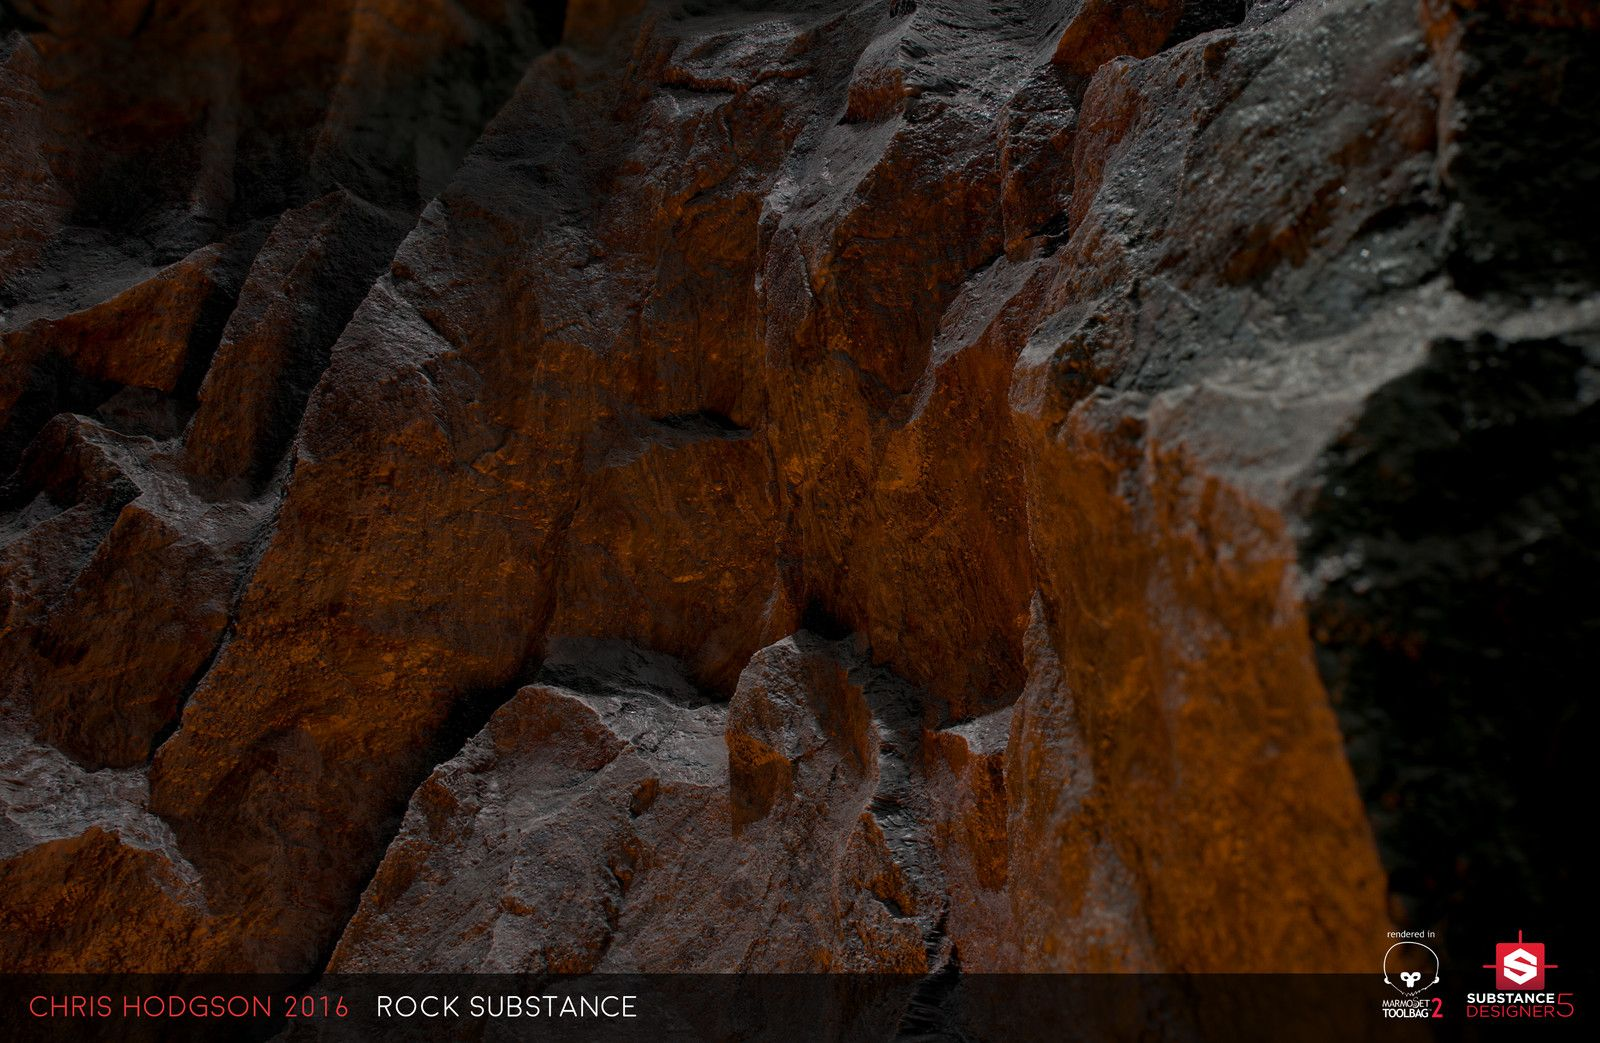 Rock / Substance Designer, Chris Hodgson on ArtStation at https://www.artstation.com/artwork/xmmNW